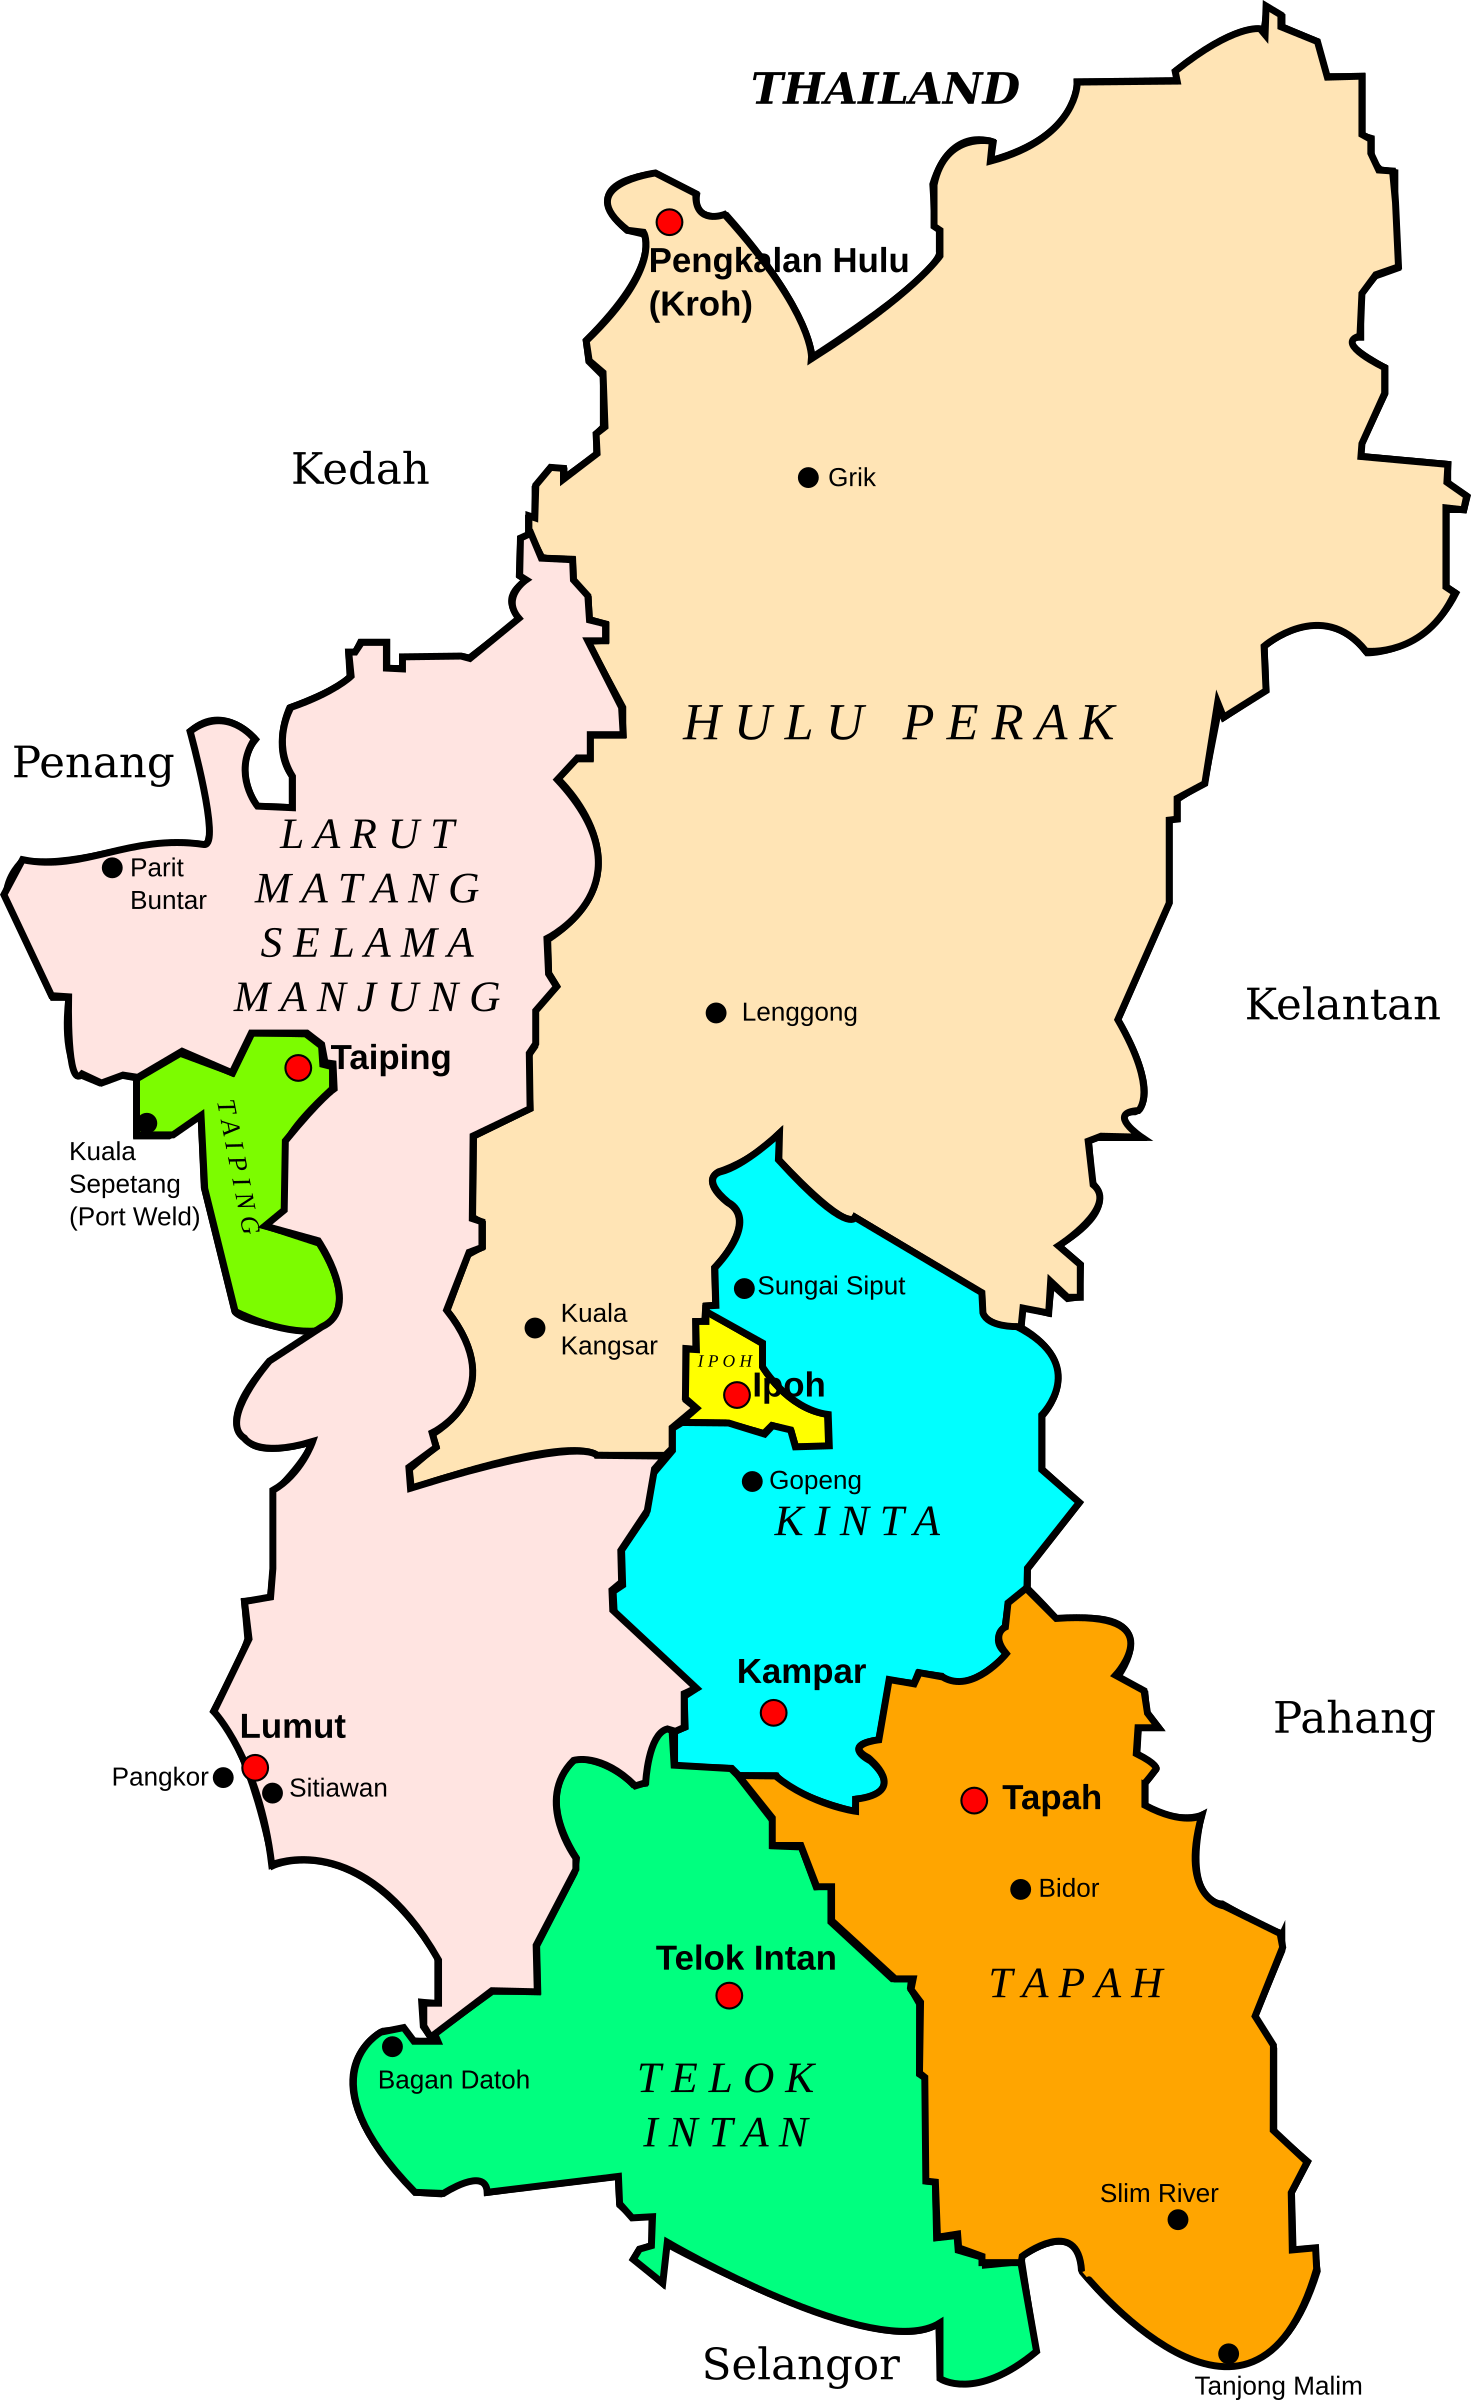 State map clipart banner stock Clipart - Map of Perak, Malaysia banner stock